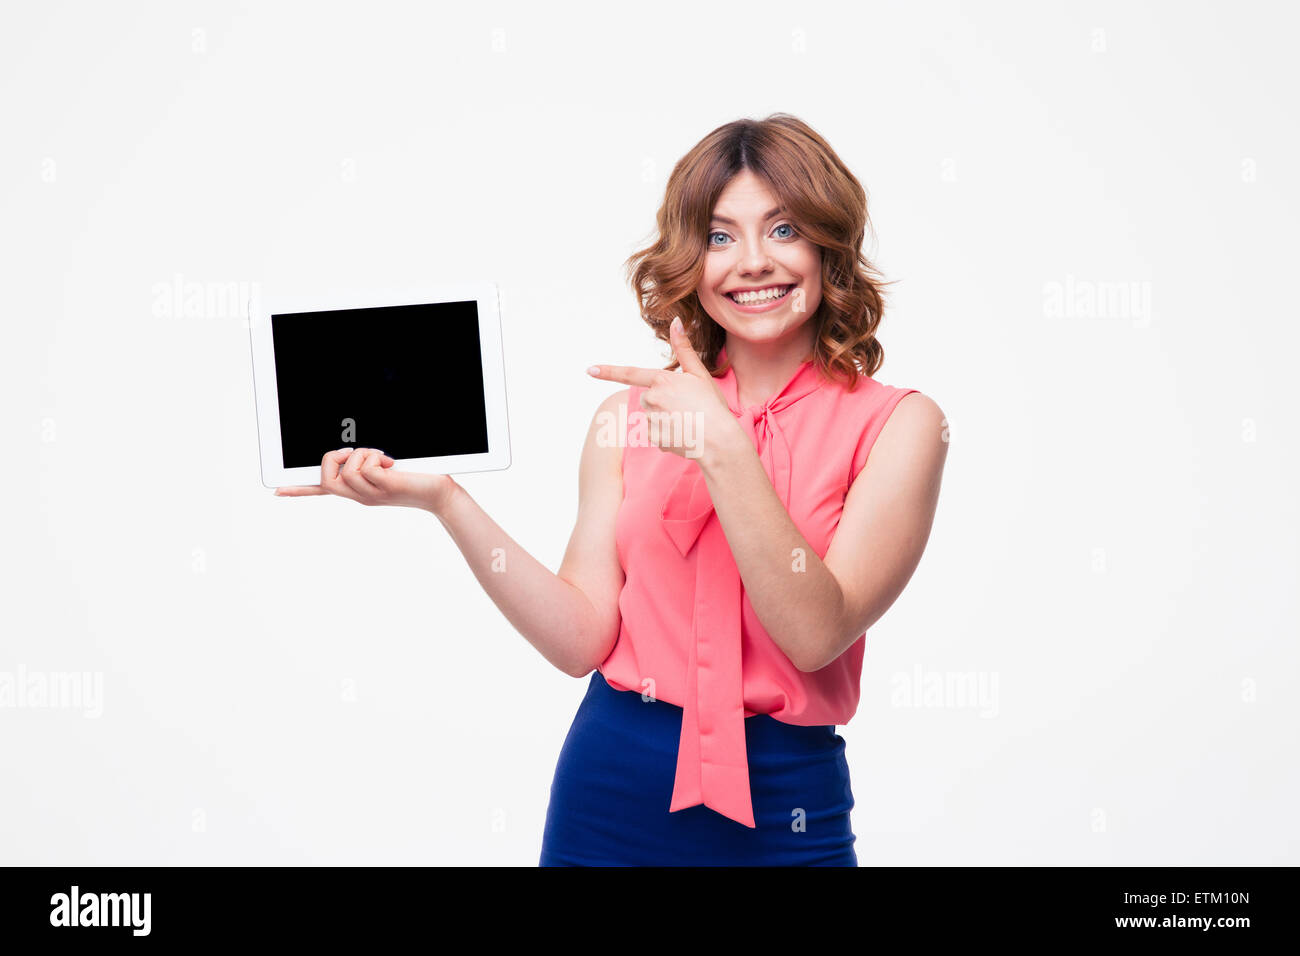 Happy woman pointing finger on blank tablet computer screen isolated on a white background. Looking at camera - Stock Image